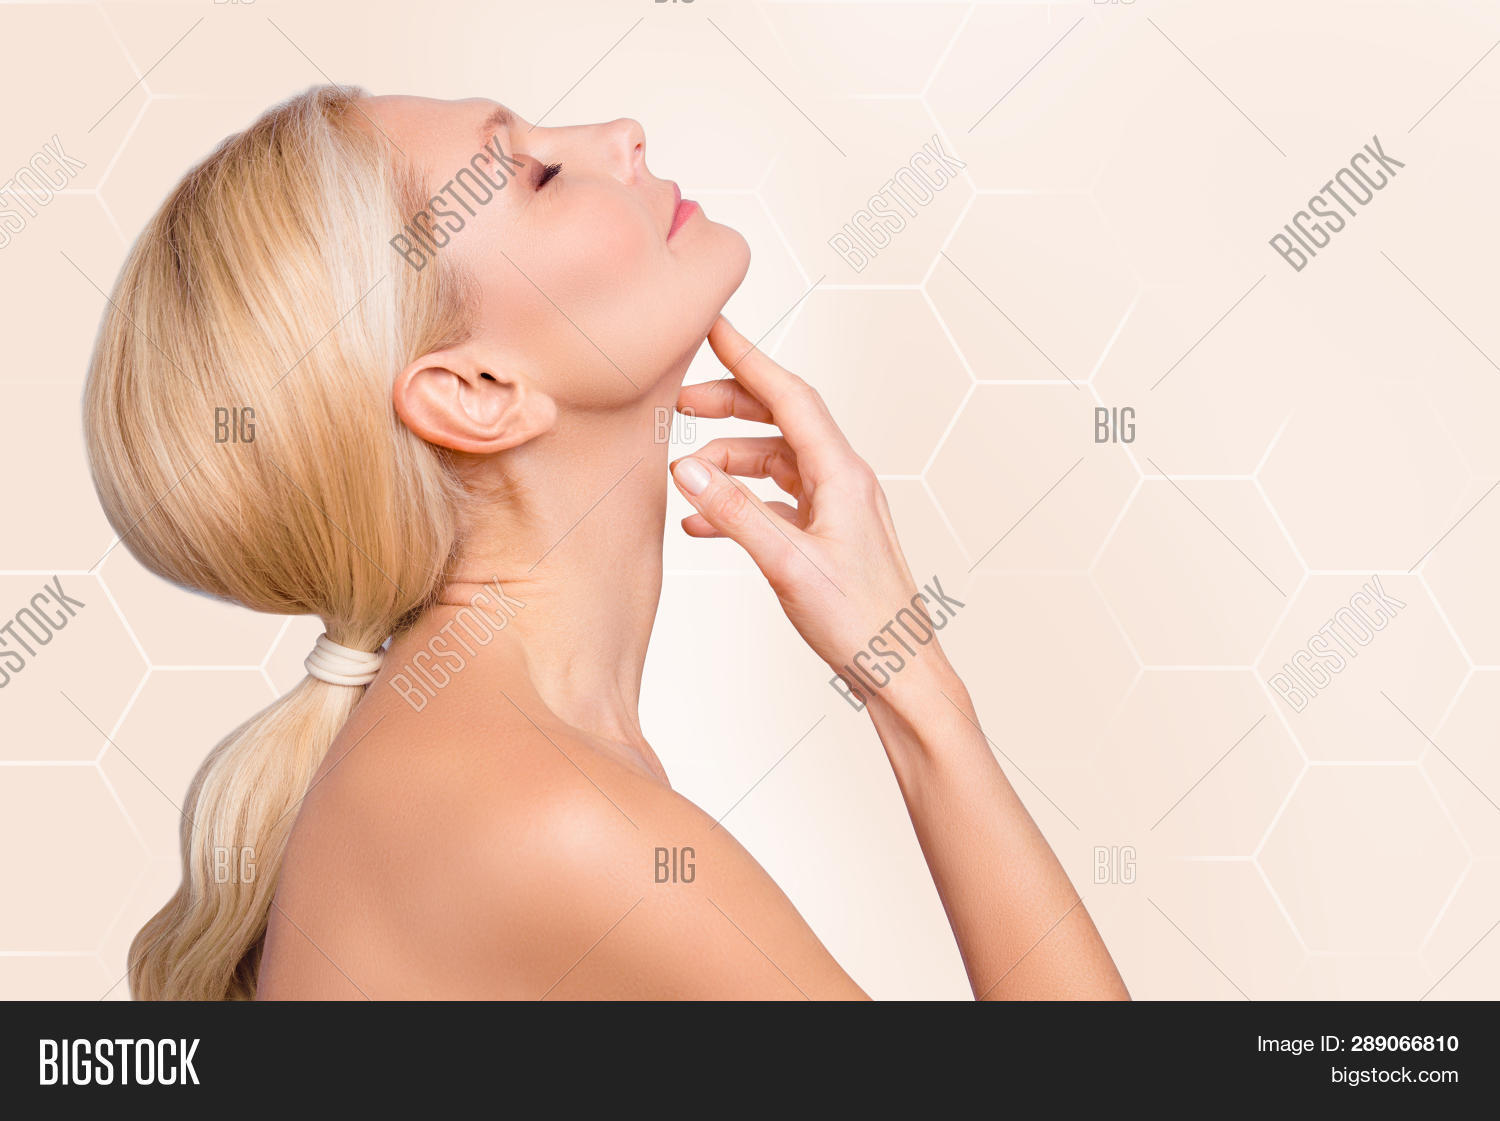 Profile Side View Half Image Photo Free Trial Bigstock